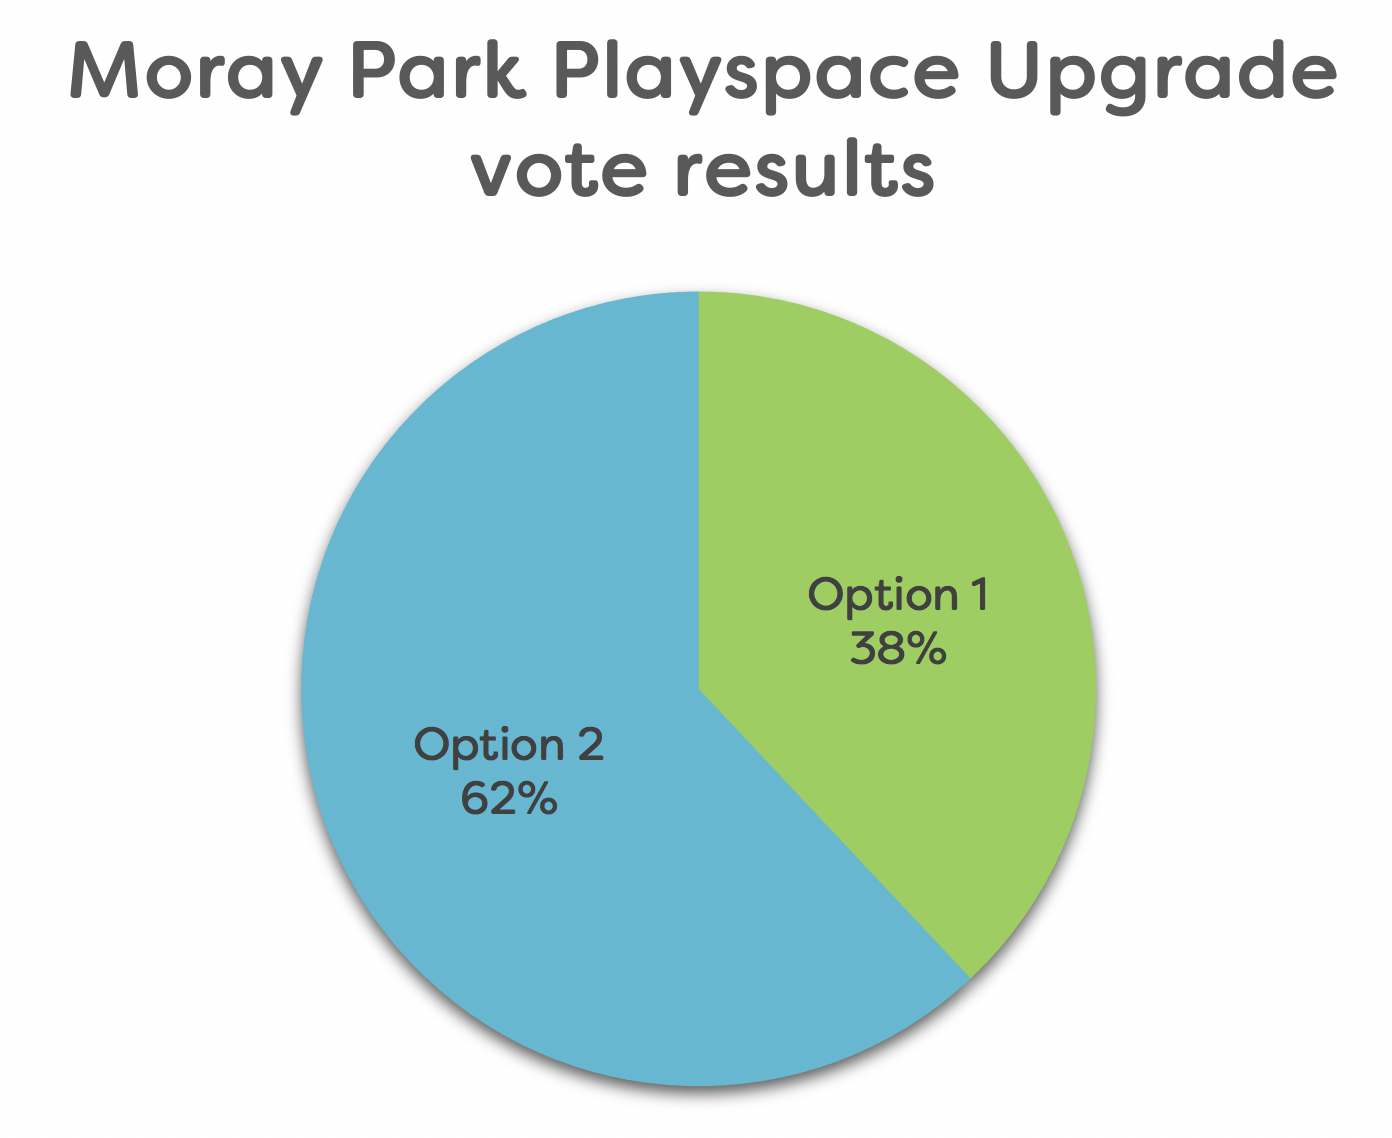 Moray Park Playspace Upgrade vote results.png